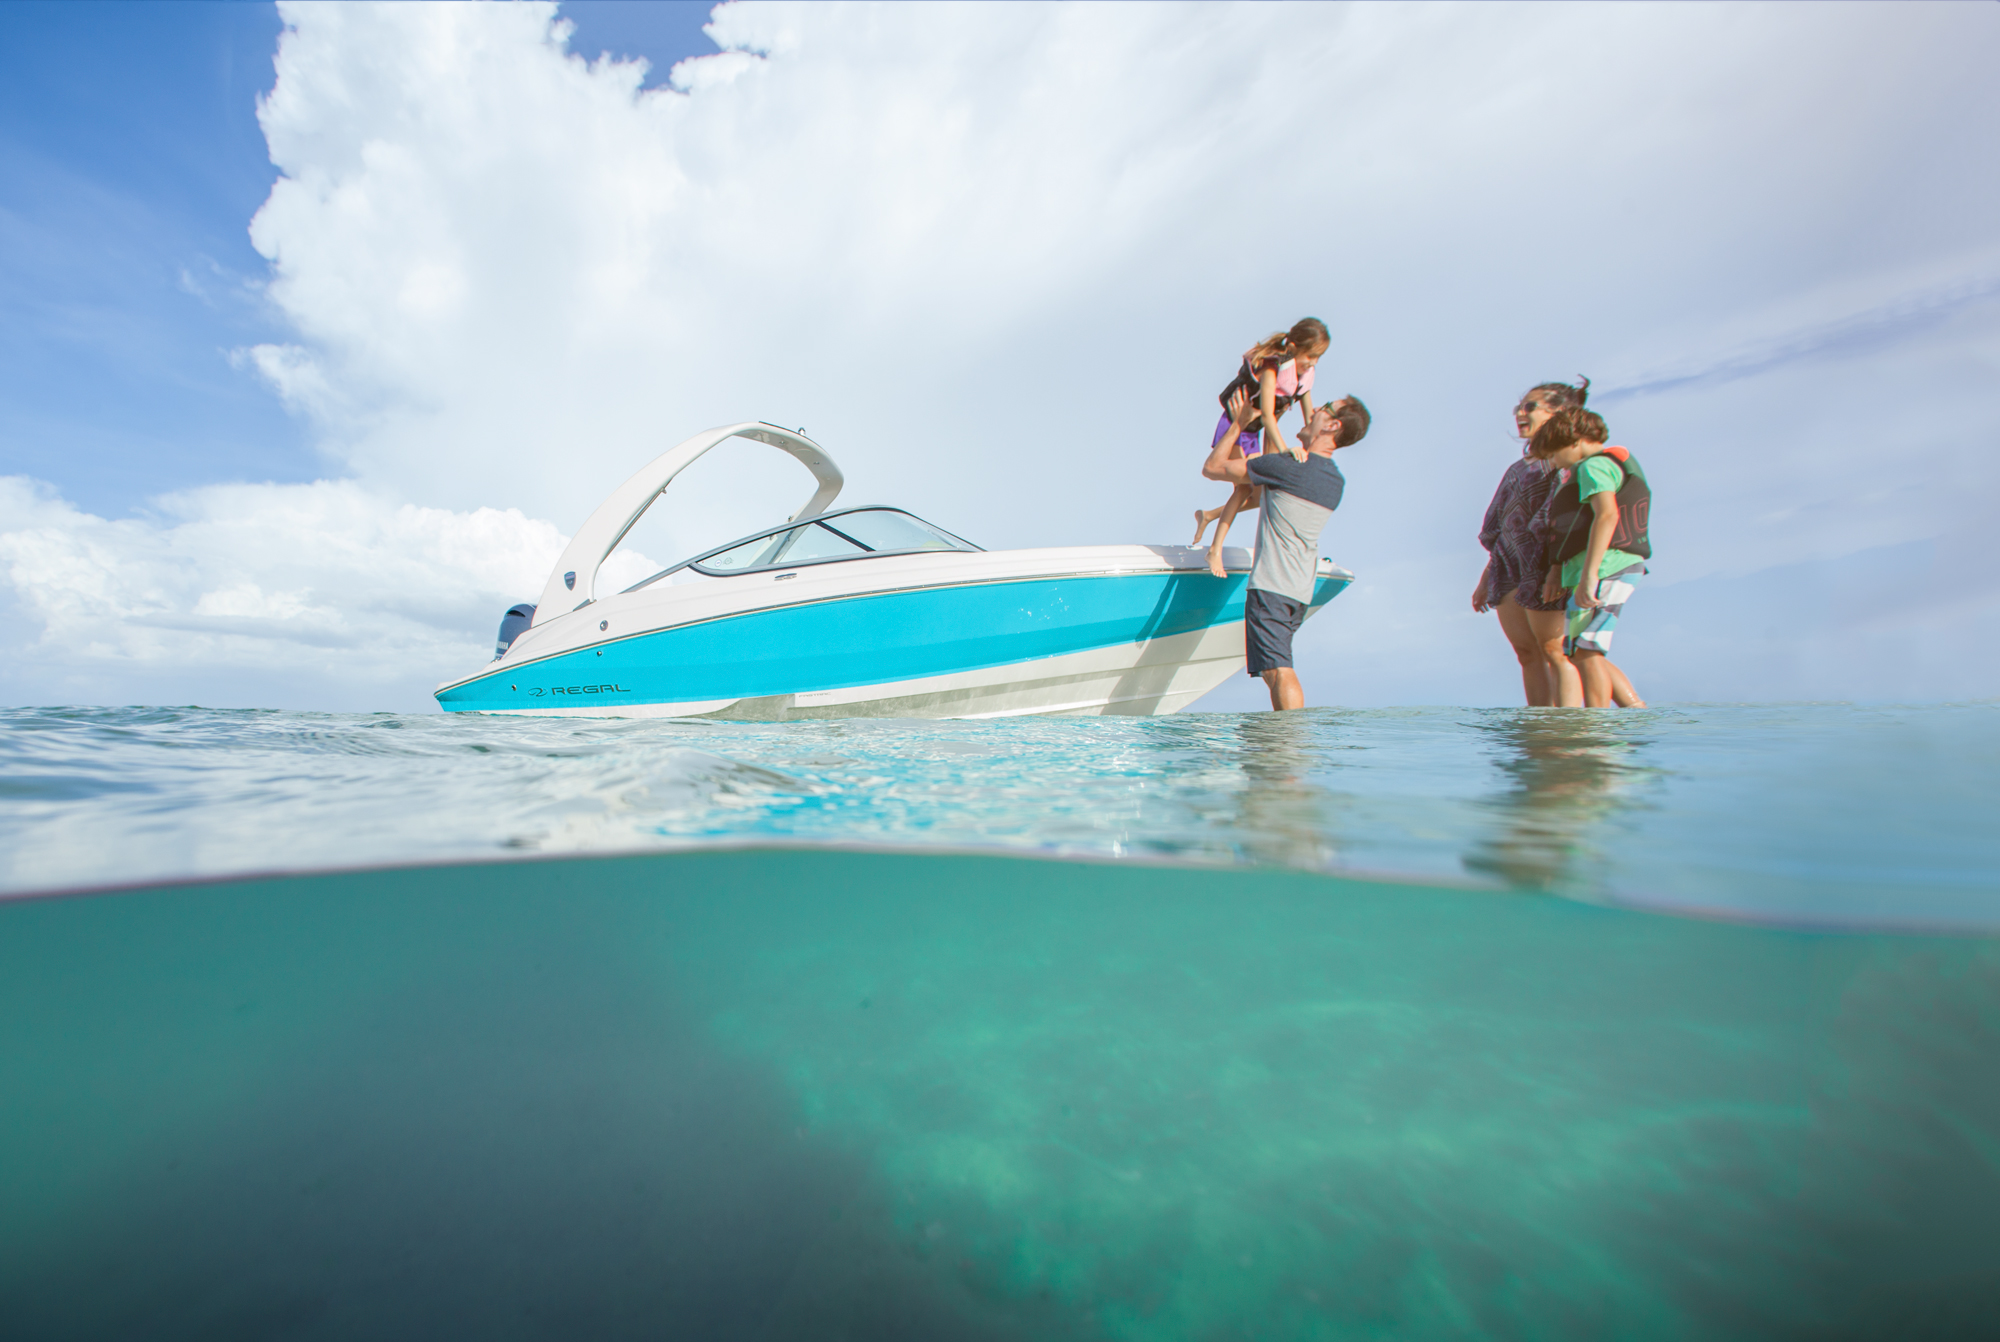 21 Obx Regal Boats Overview Yamaha Outboard Wiring Color Code Family Time Is Better On The Water